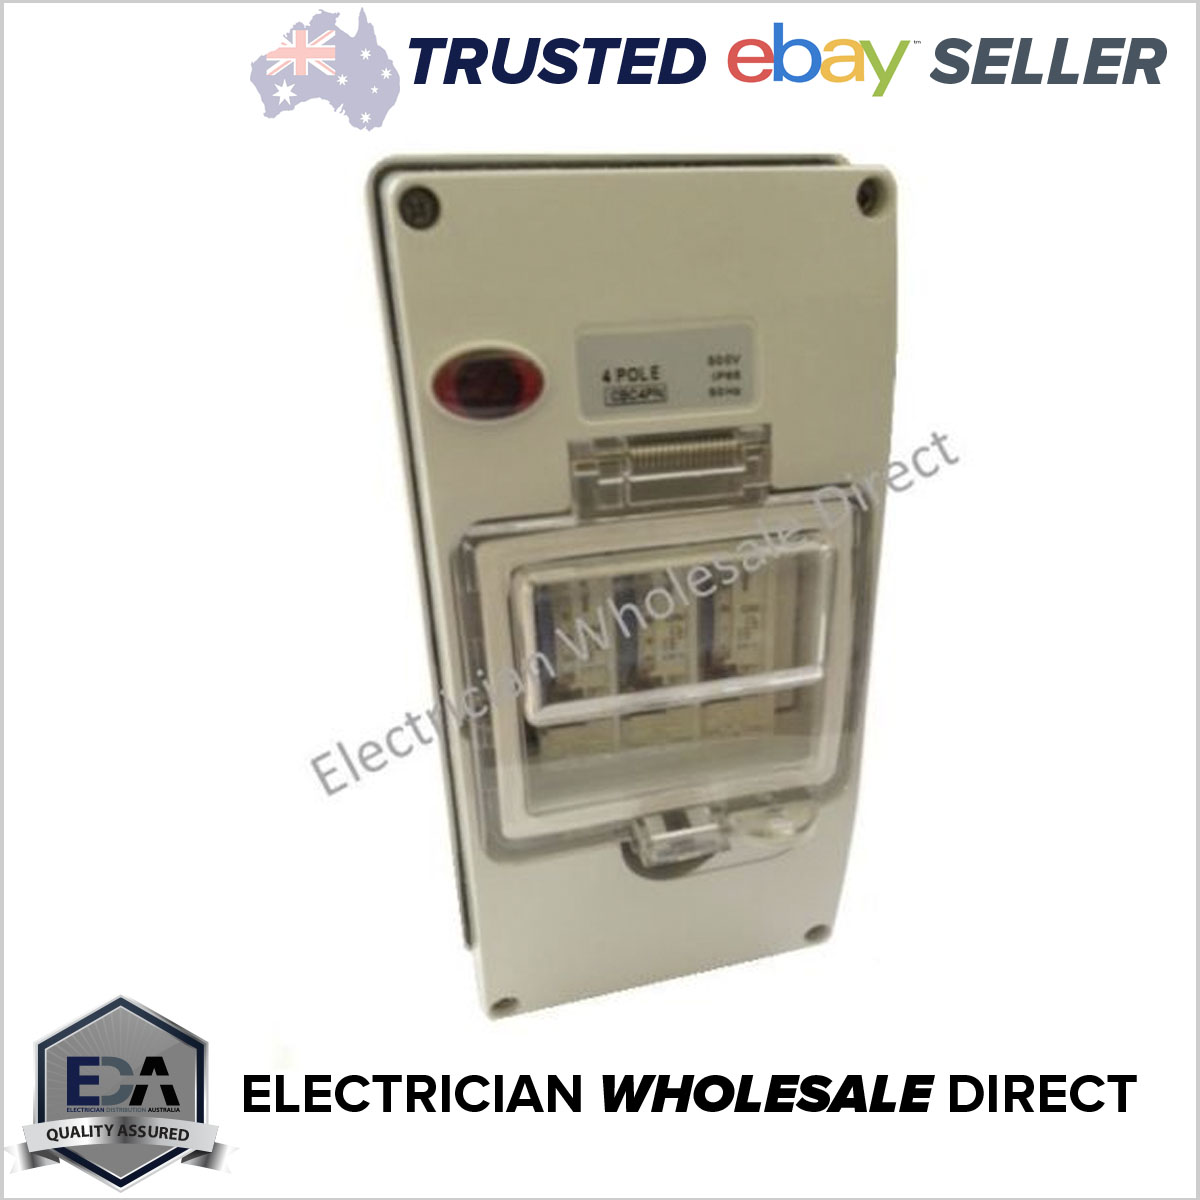 1xdigital Time Switch Clock In A Weatherproof 4 Pole Enclosure Neon Circuit Breaker With Timer Ip66